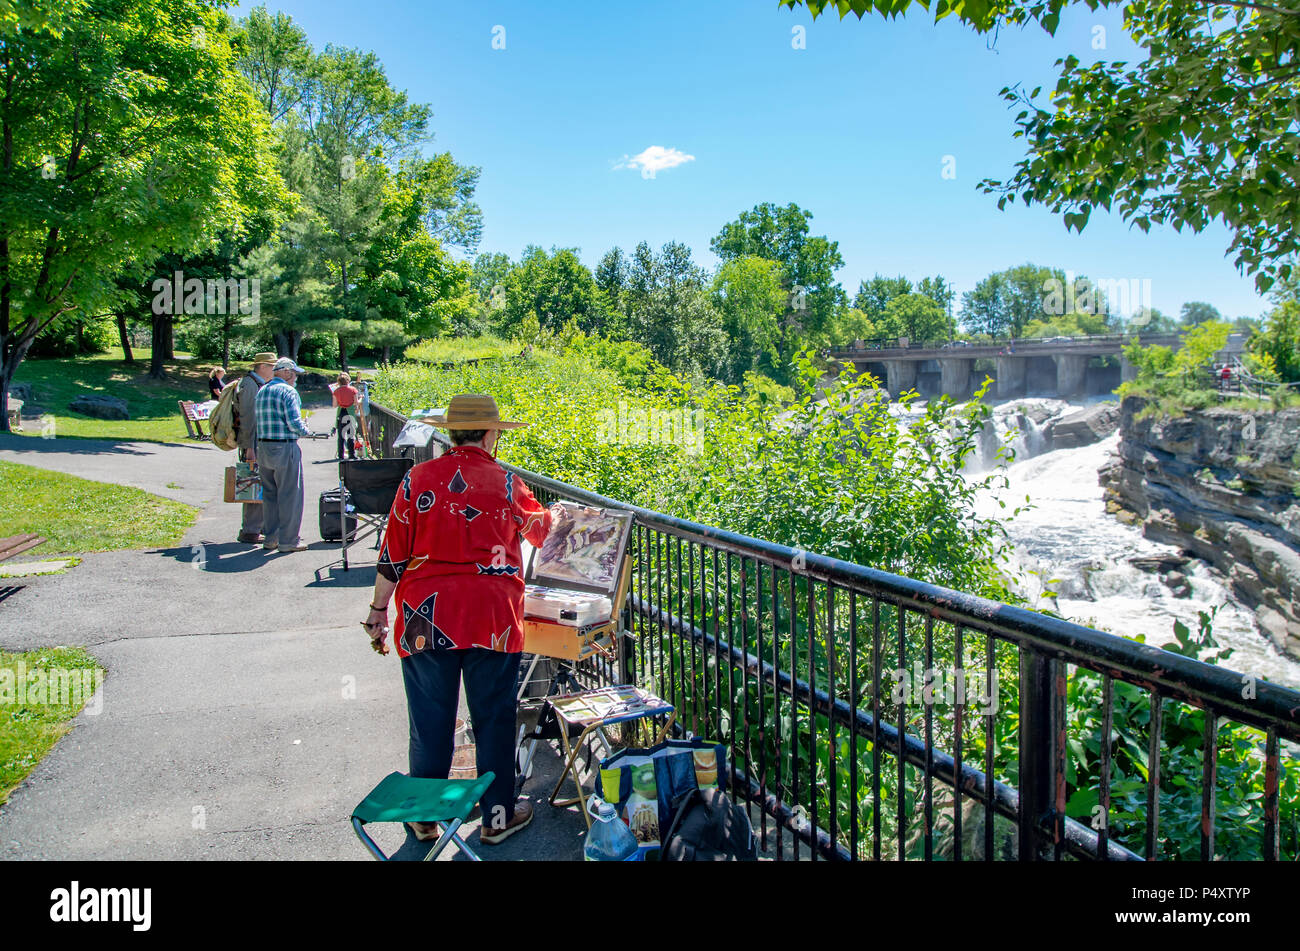 Hog's Back Park was developed in the 1950s, and it occupies an area of over 20.8 hectares. During the construction of the Rideau Canal (1826–1832), on - Stock Image